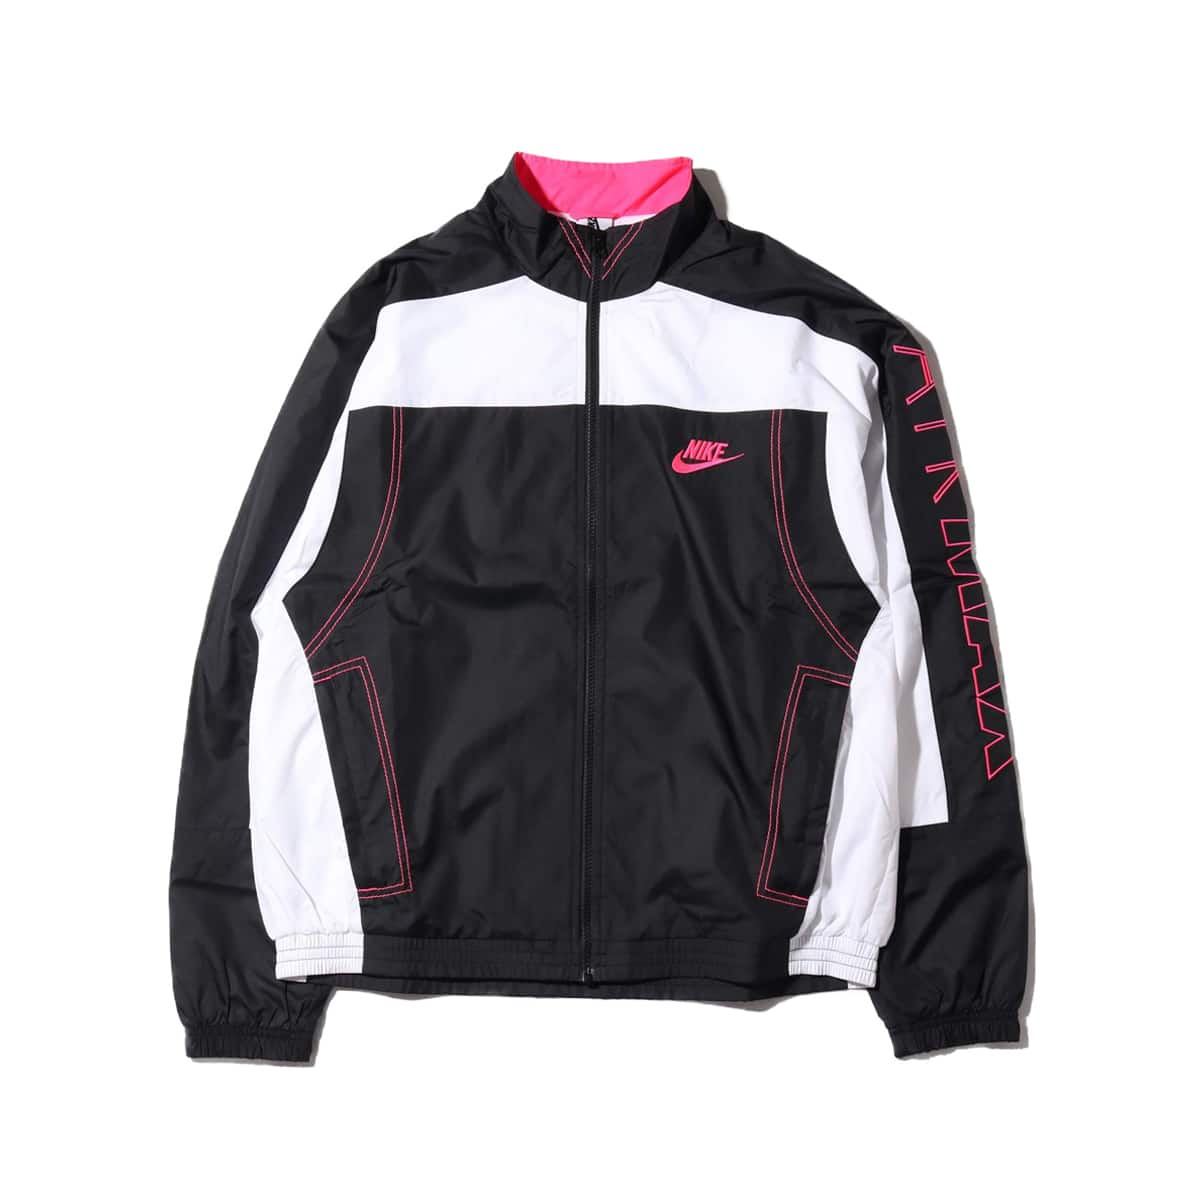 NIKE NRG CU VINTAGE PATCHWORK TRACK JACKET BLACK/WHITE/HYPER PINK 19SU-S_photo_large